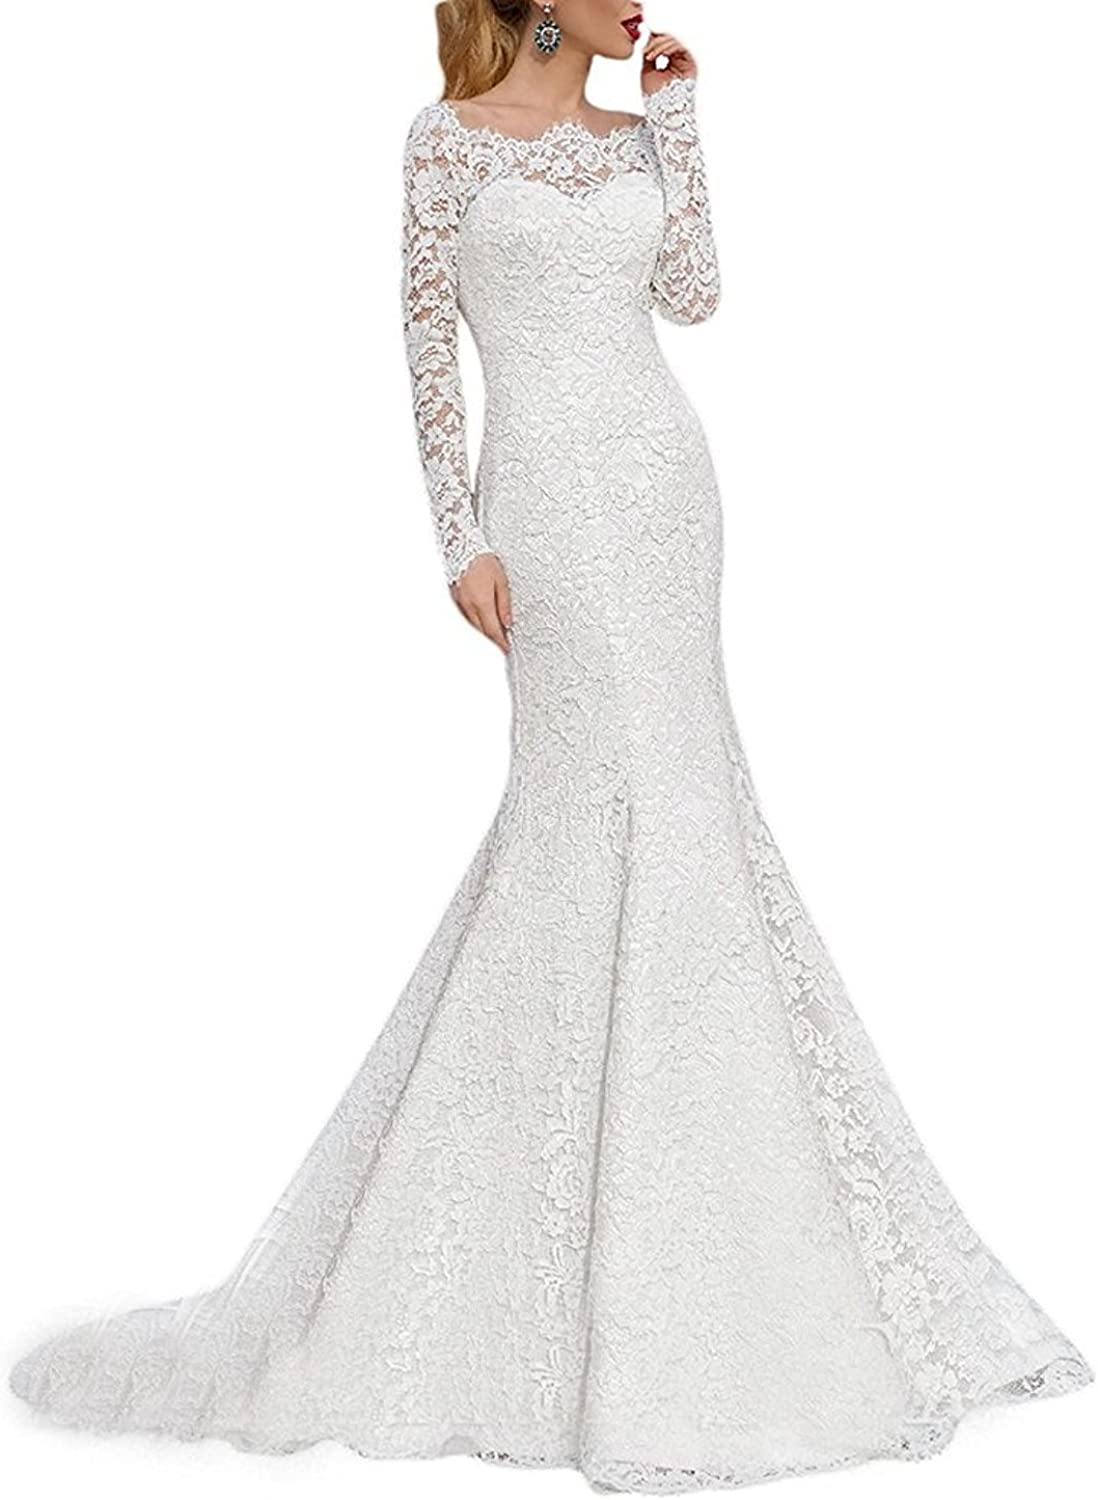 JoyVany Women's Full Lace Mermaid Wedding Dress 2019 Long Bridal Gown for Bride with Sleeve JW018